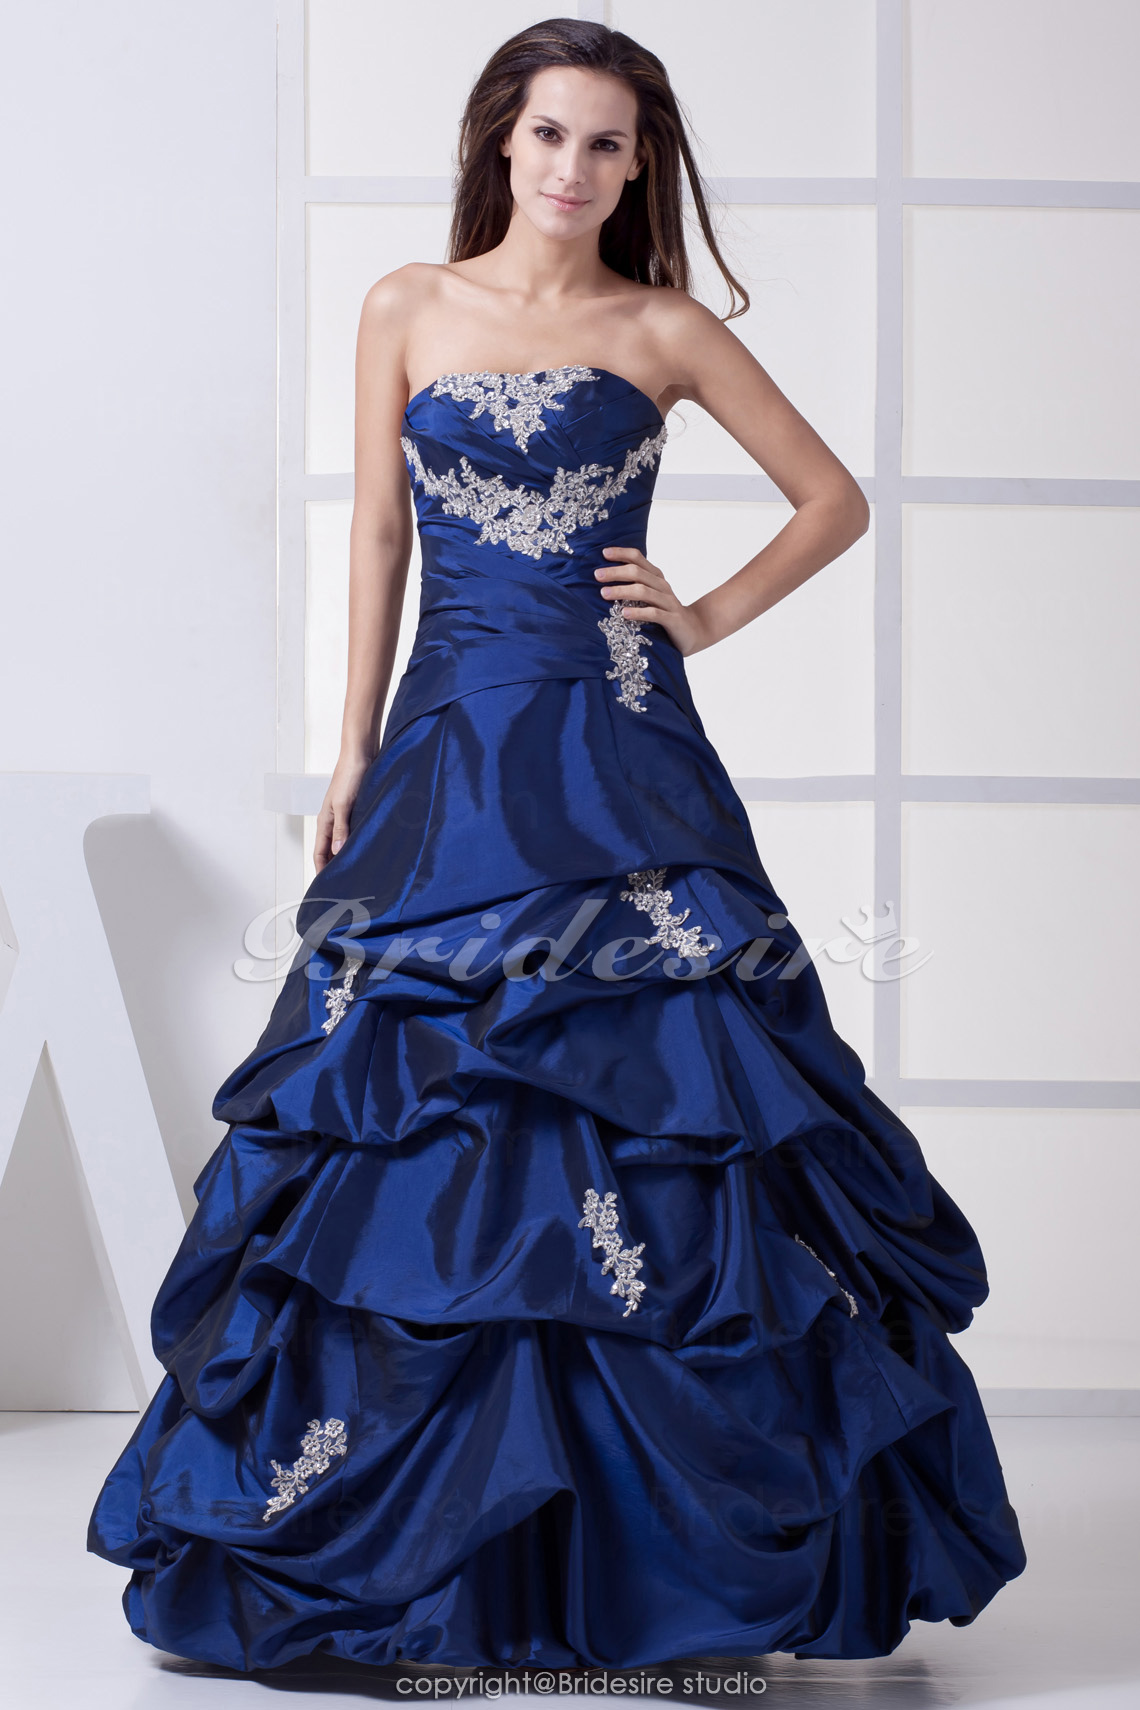 Ball Gown Strapless Floor-length Sleeveless Taffeta Dress